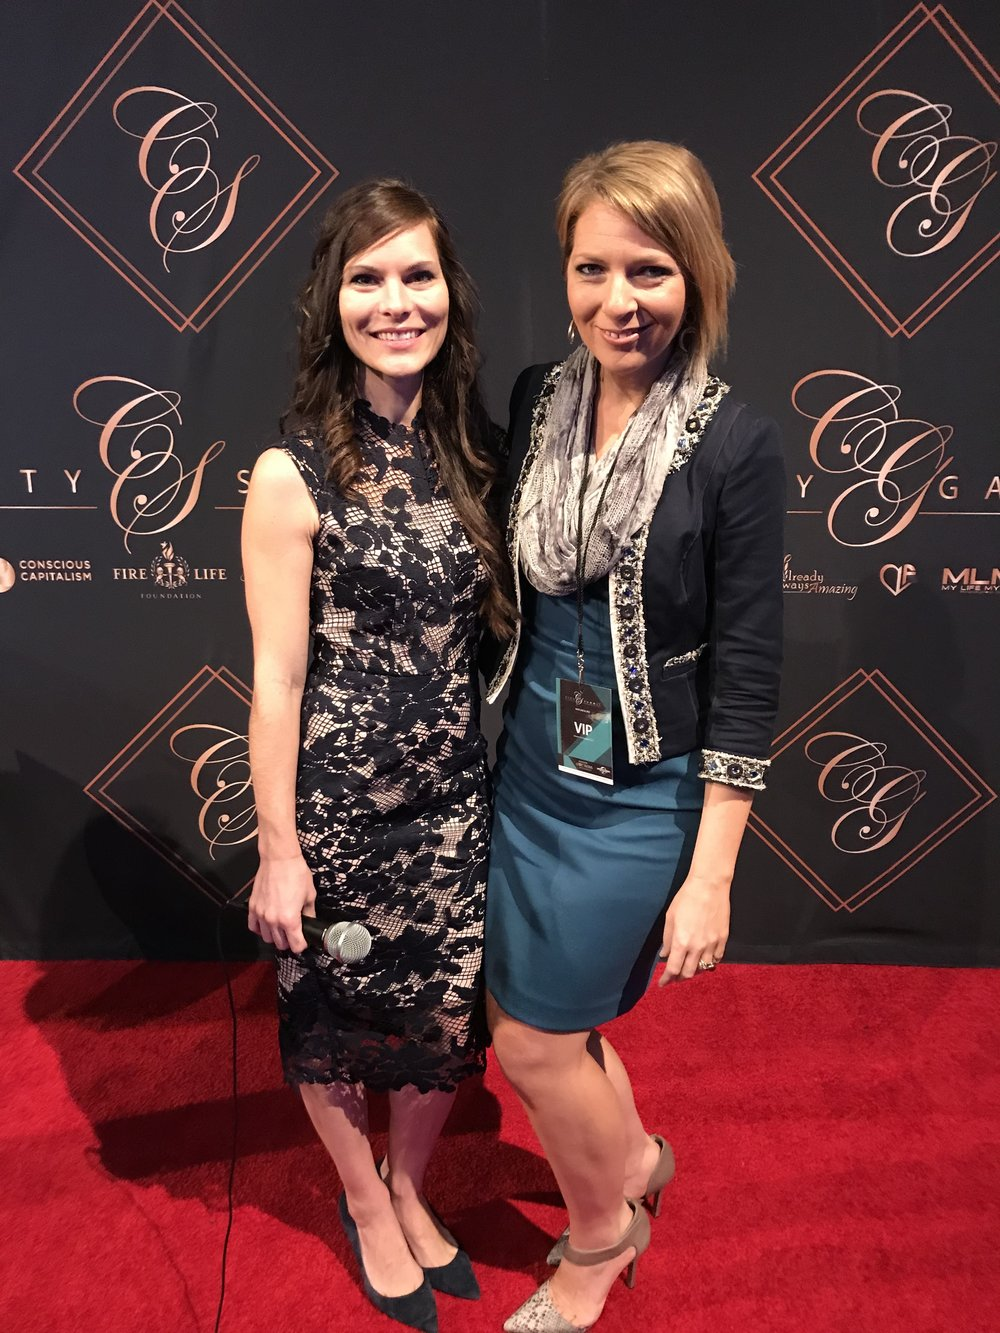 Amy Novakovich and Erica Castner at City Summit at Universal Studios in Los Angeles, CA on March 3, 2018.